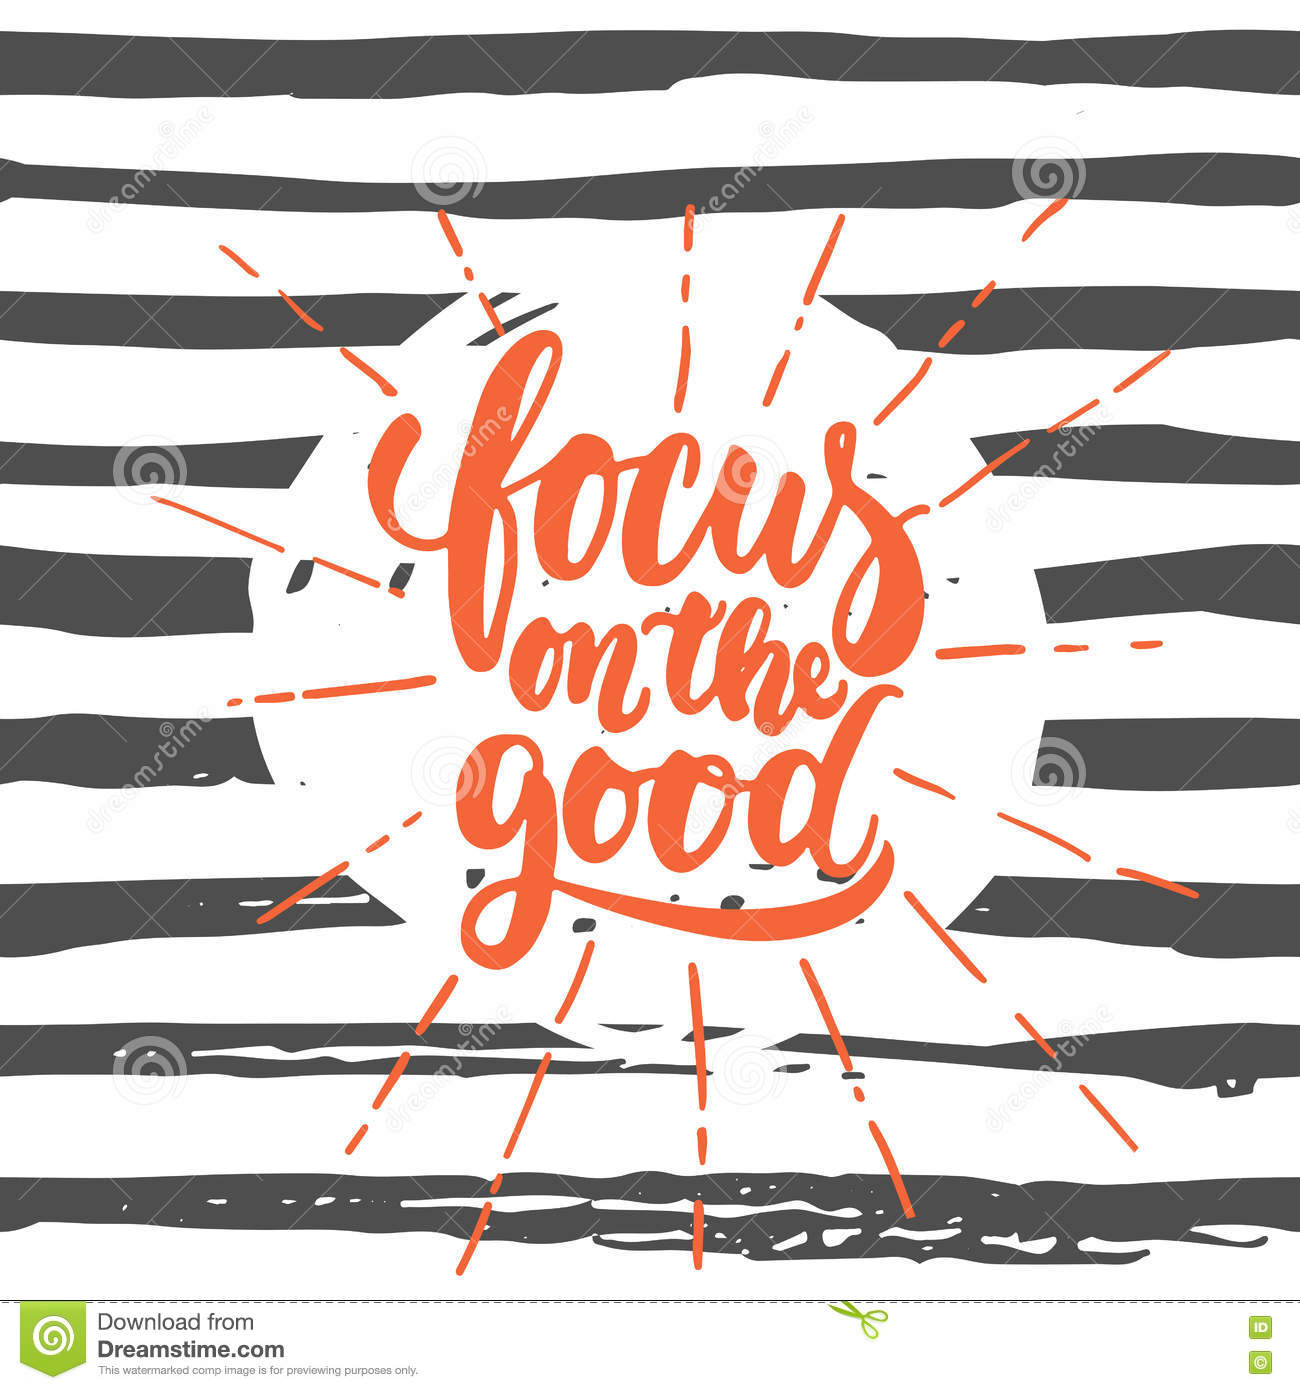 Focus on the good- hand drawn lettering phrase on the striped grunge background. Fun brush ink inscription for